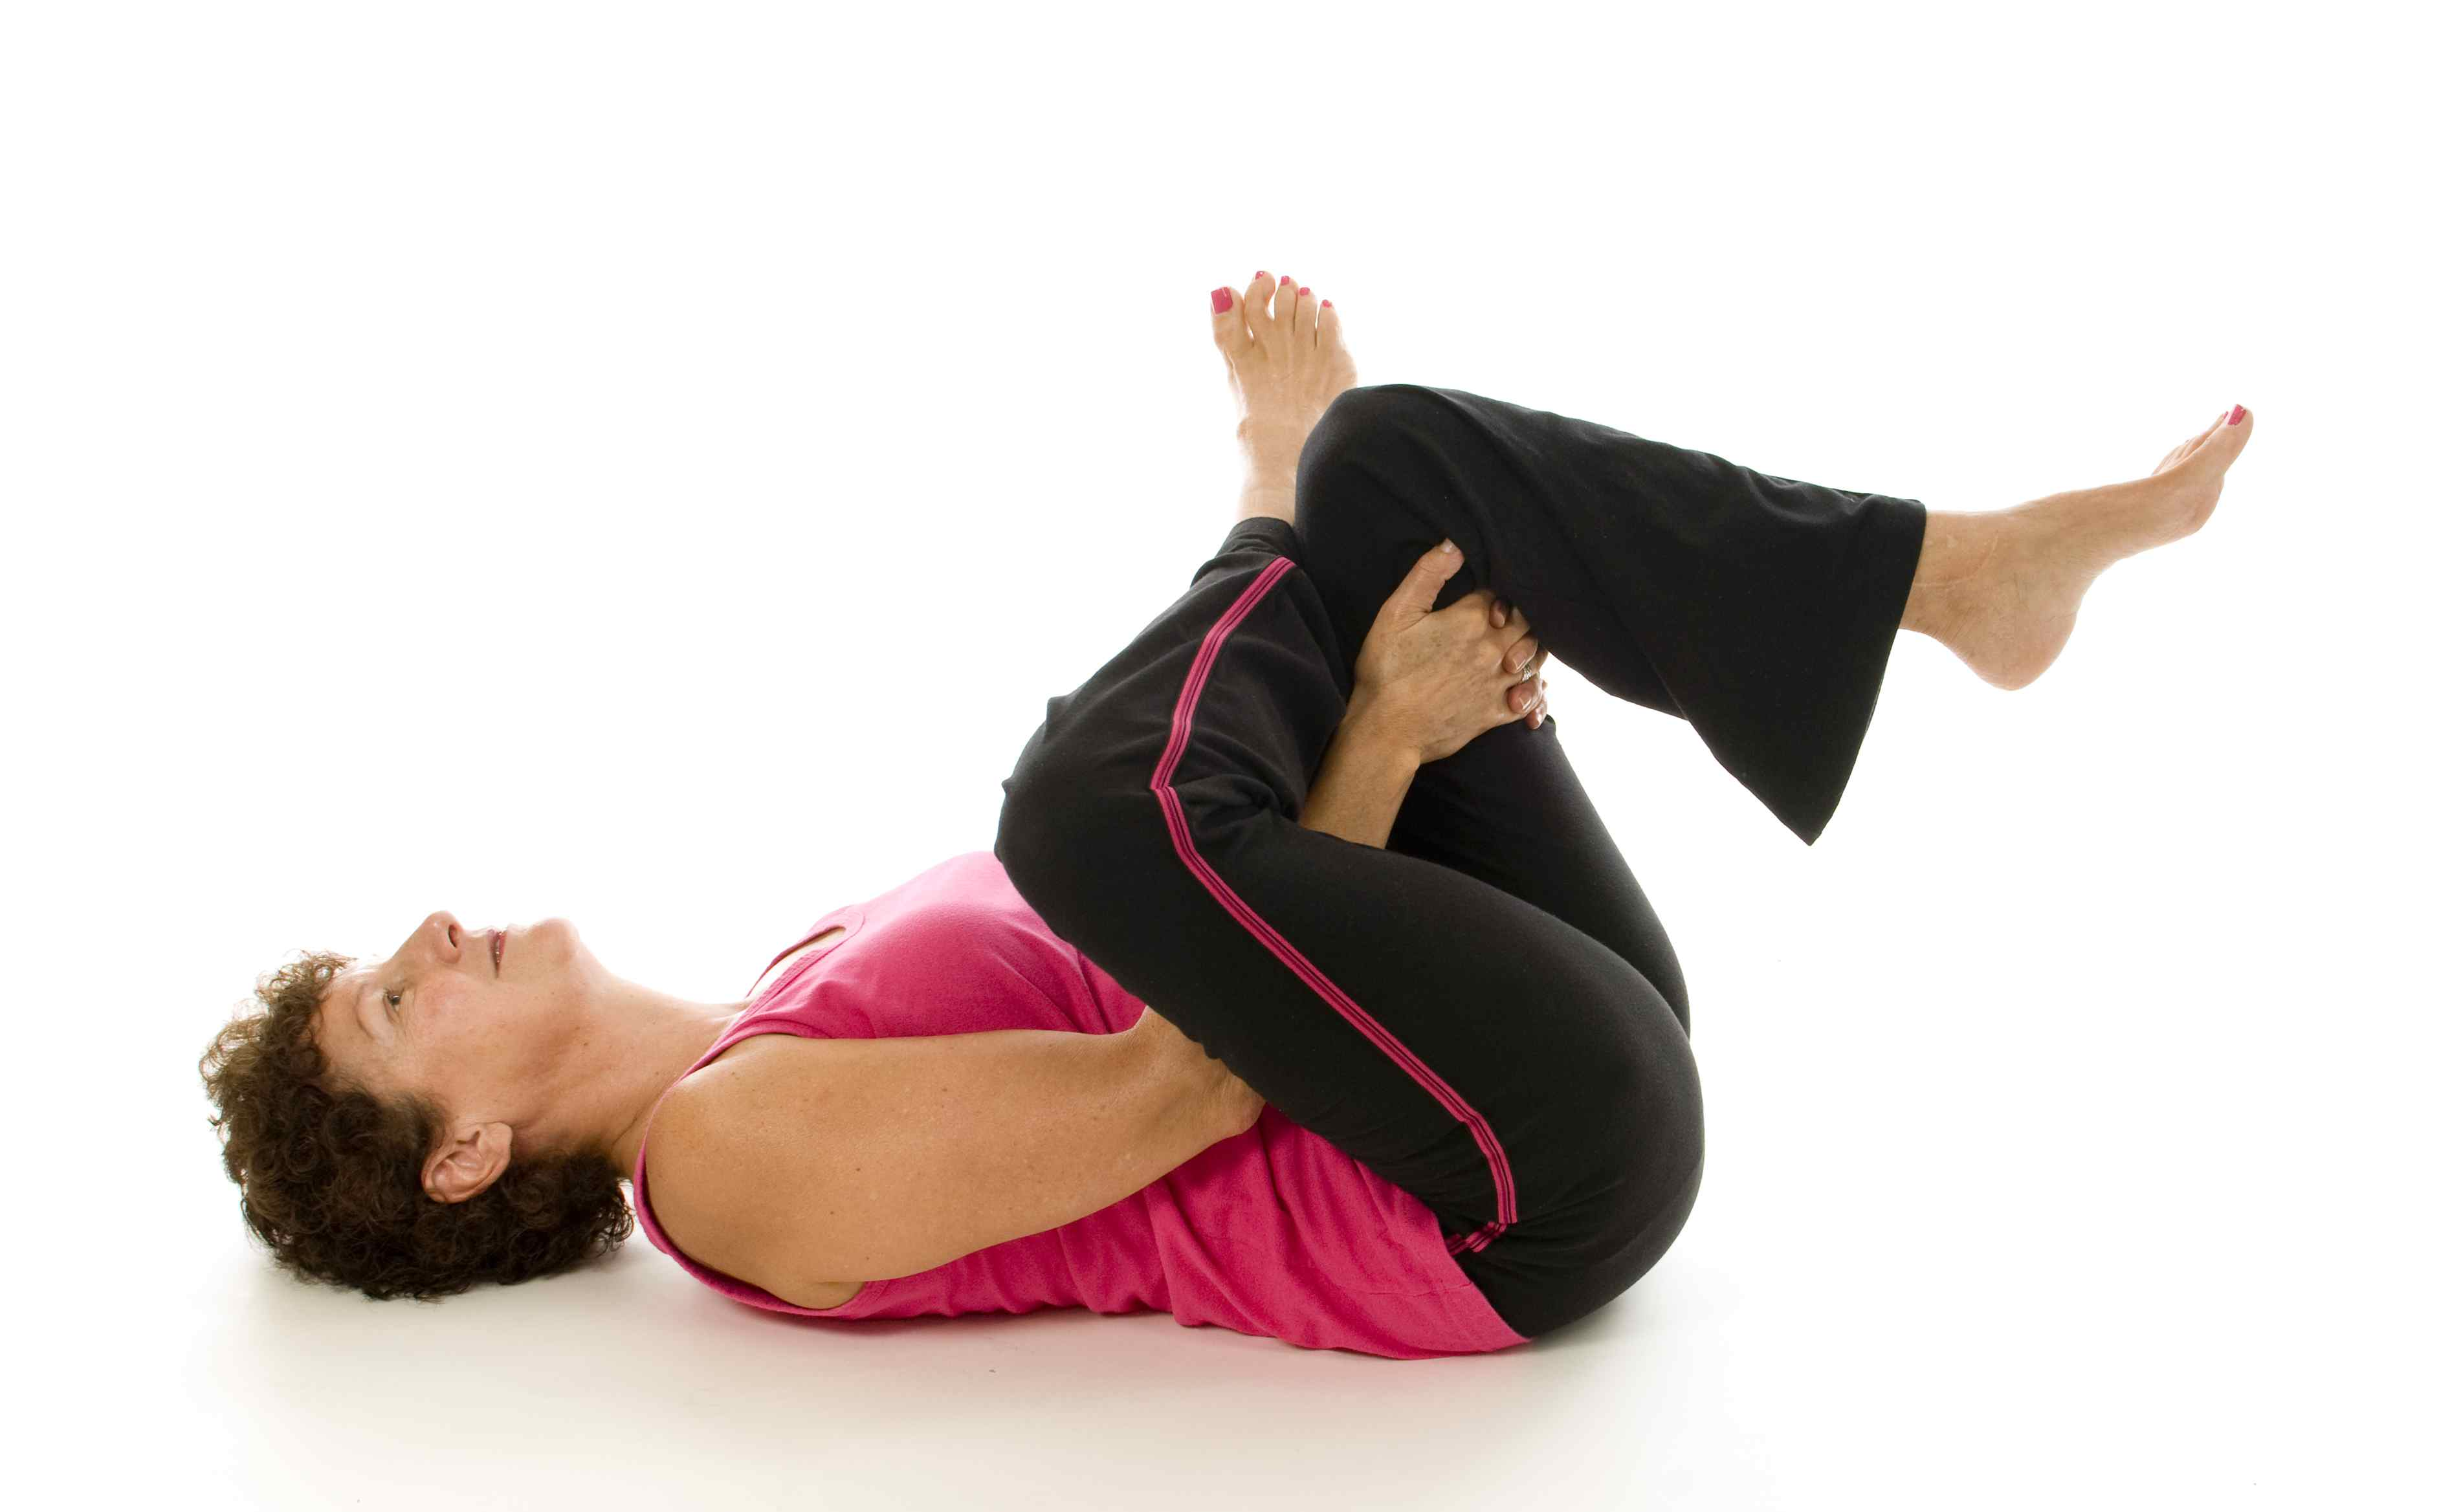 hip stretching exercise for back pain relief